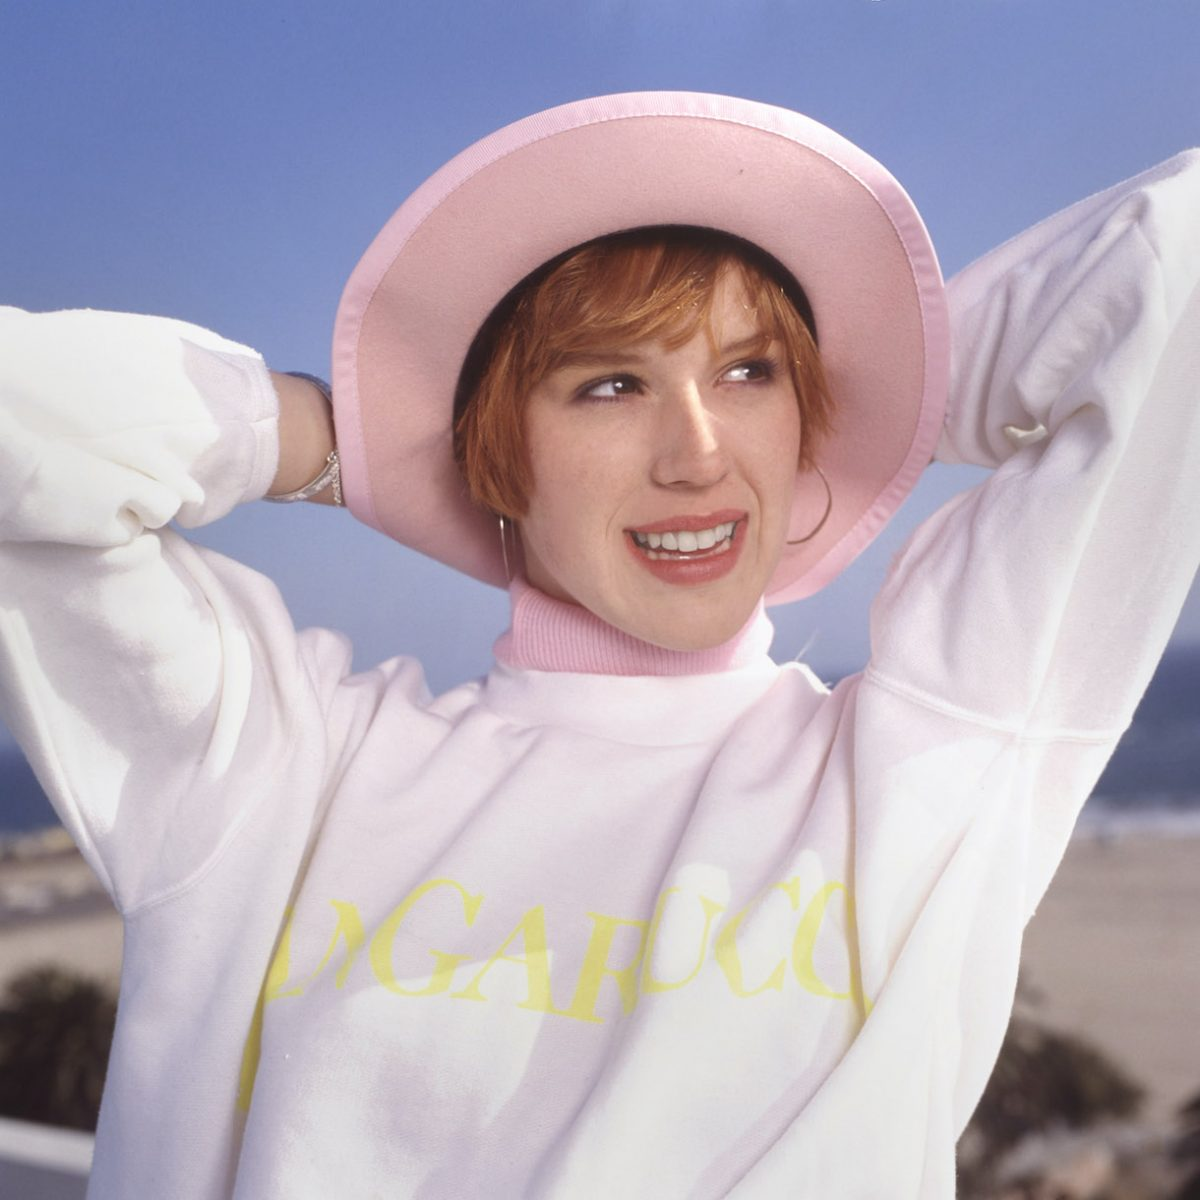 VERS 1986: Molly Ringwald pose pour un portrait à Hollywood, Californie